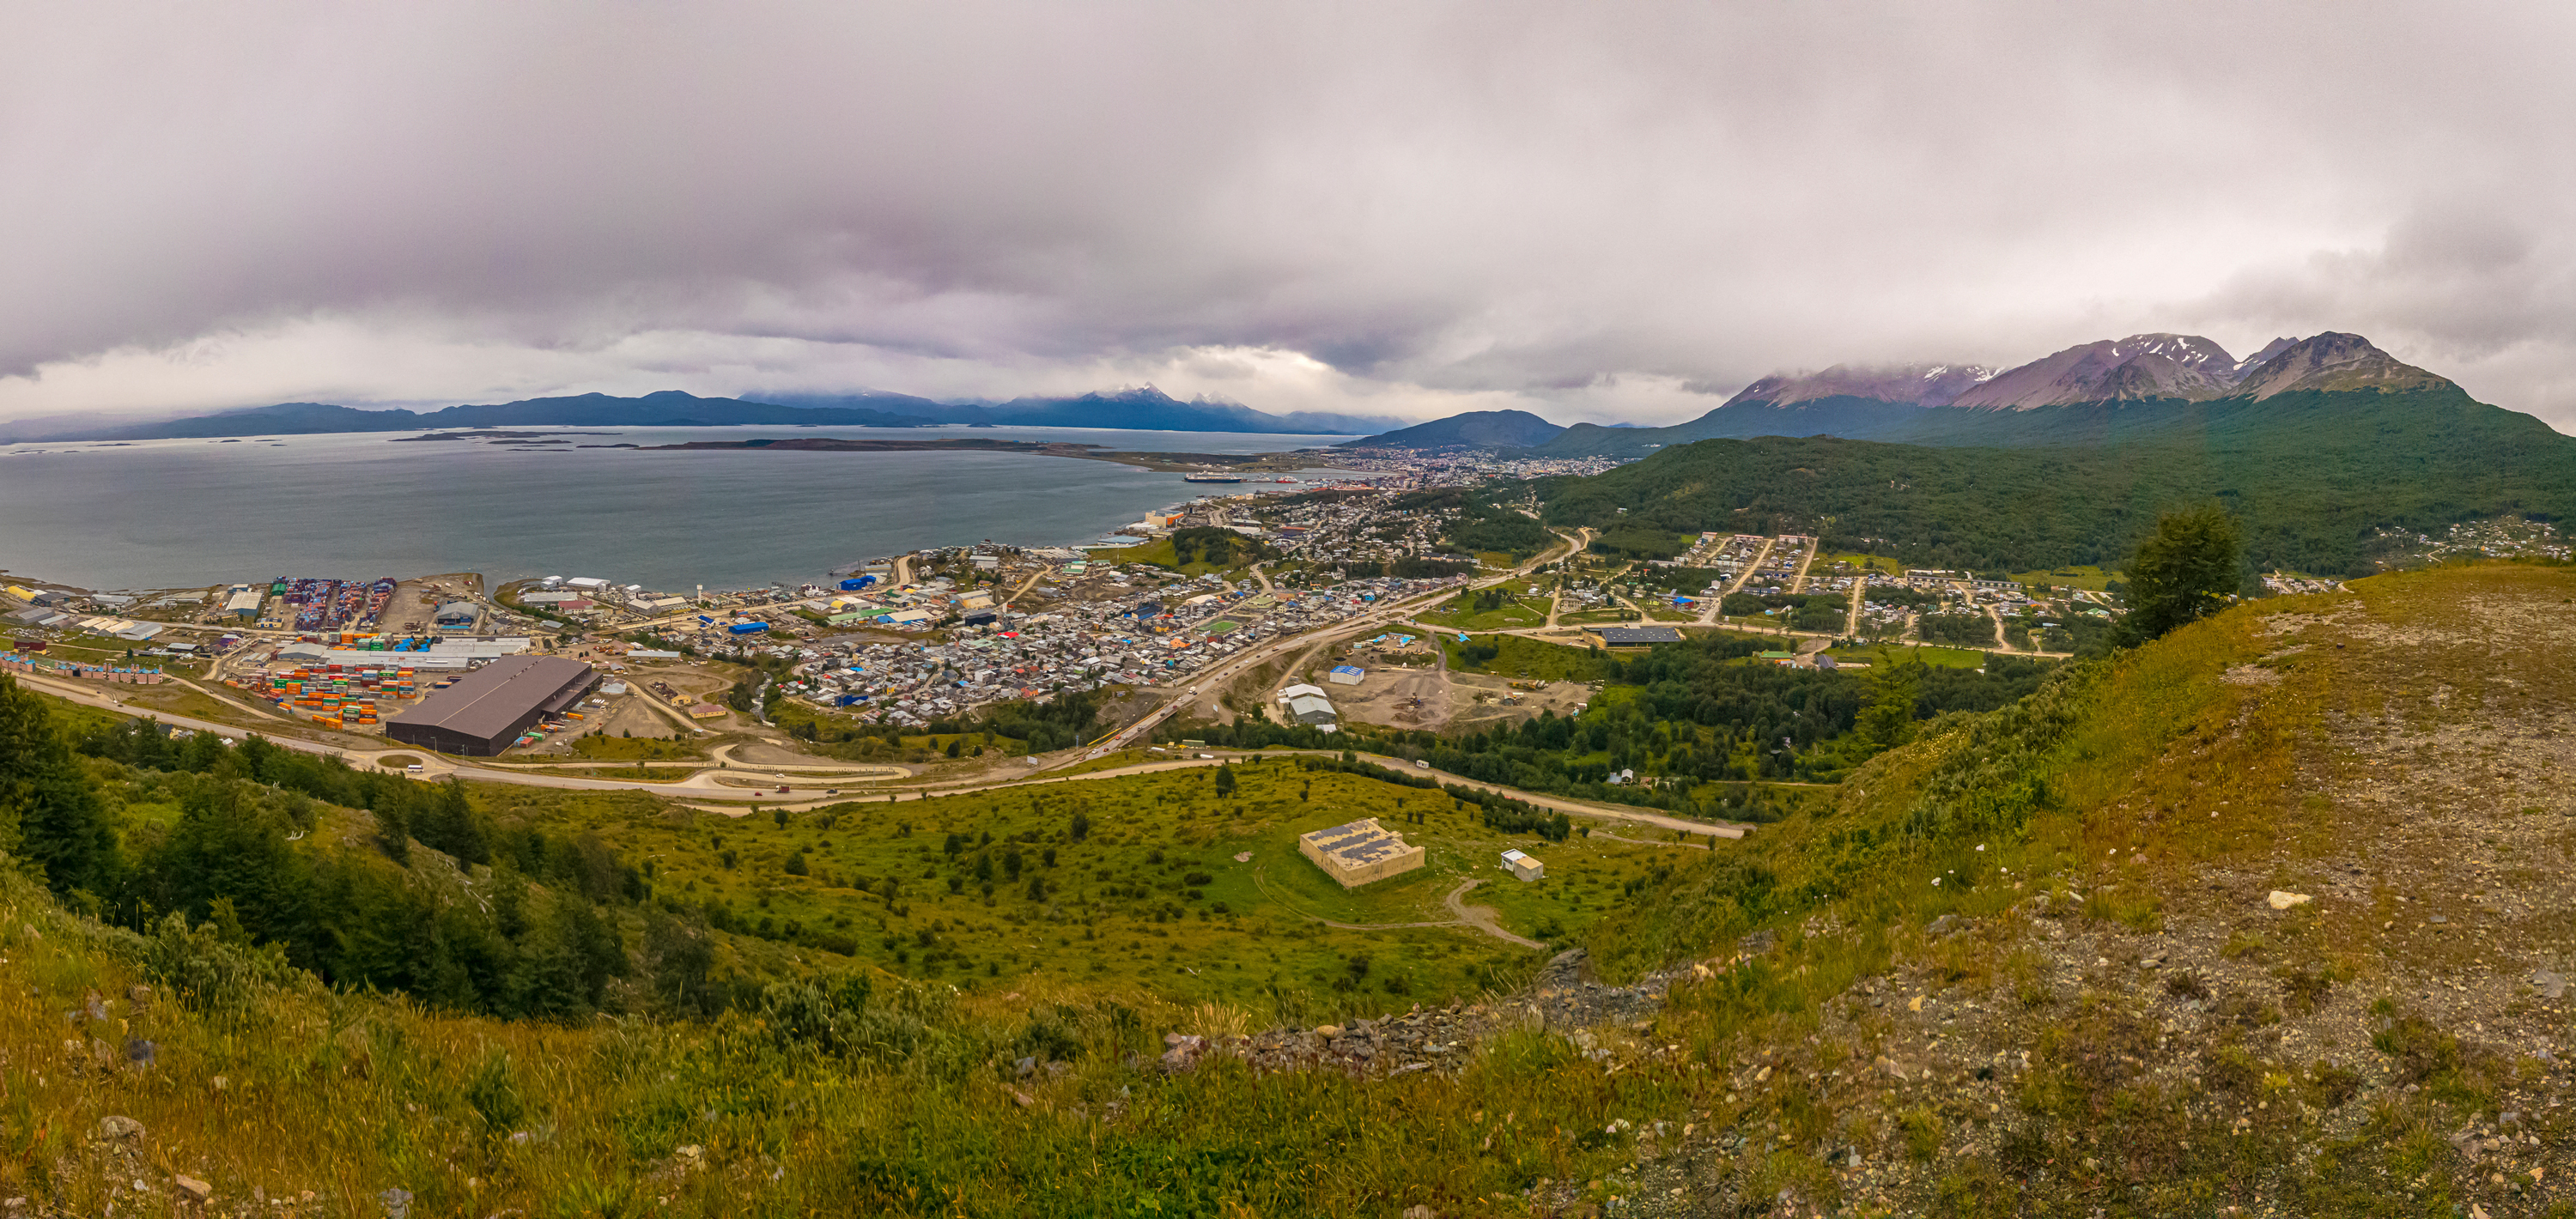 A panoramic landscape of the city of Ushuaia, Argentina